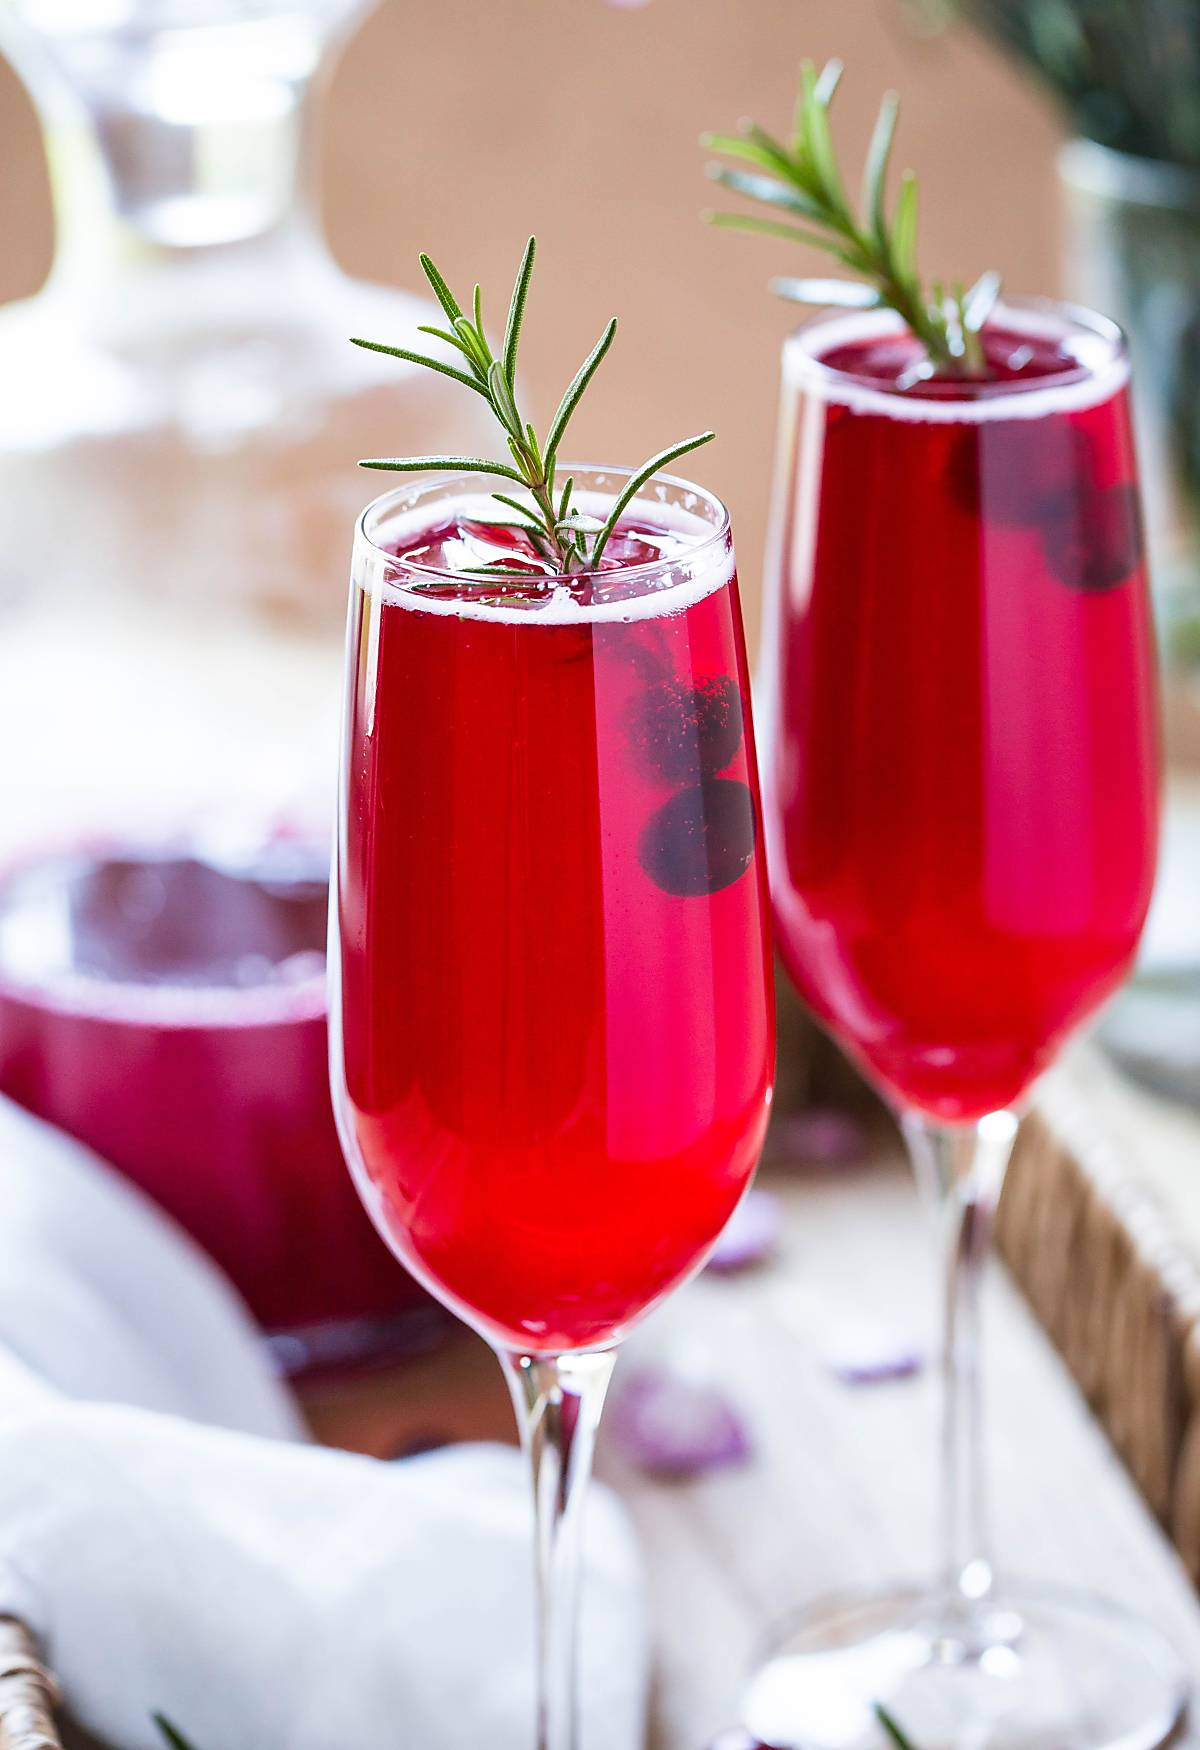 Healthy And Festive Non-alcoholic Cranberry Mimosa! | #thanksgivingdrinks #nonalcoholic #cranberry #mimosa